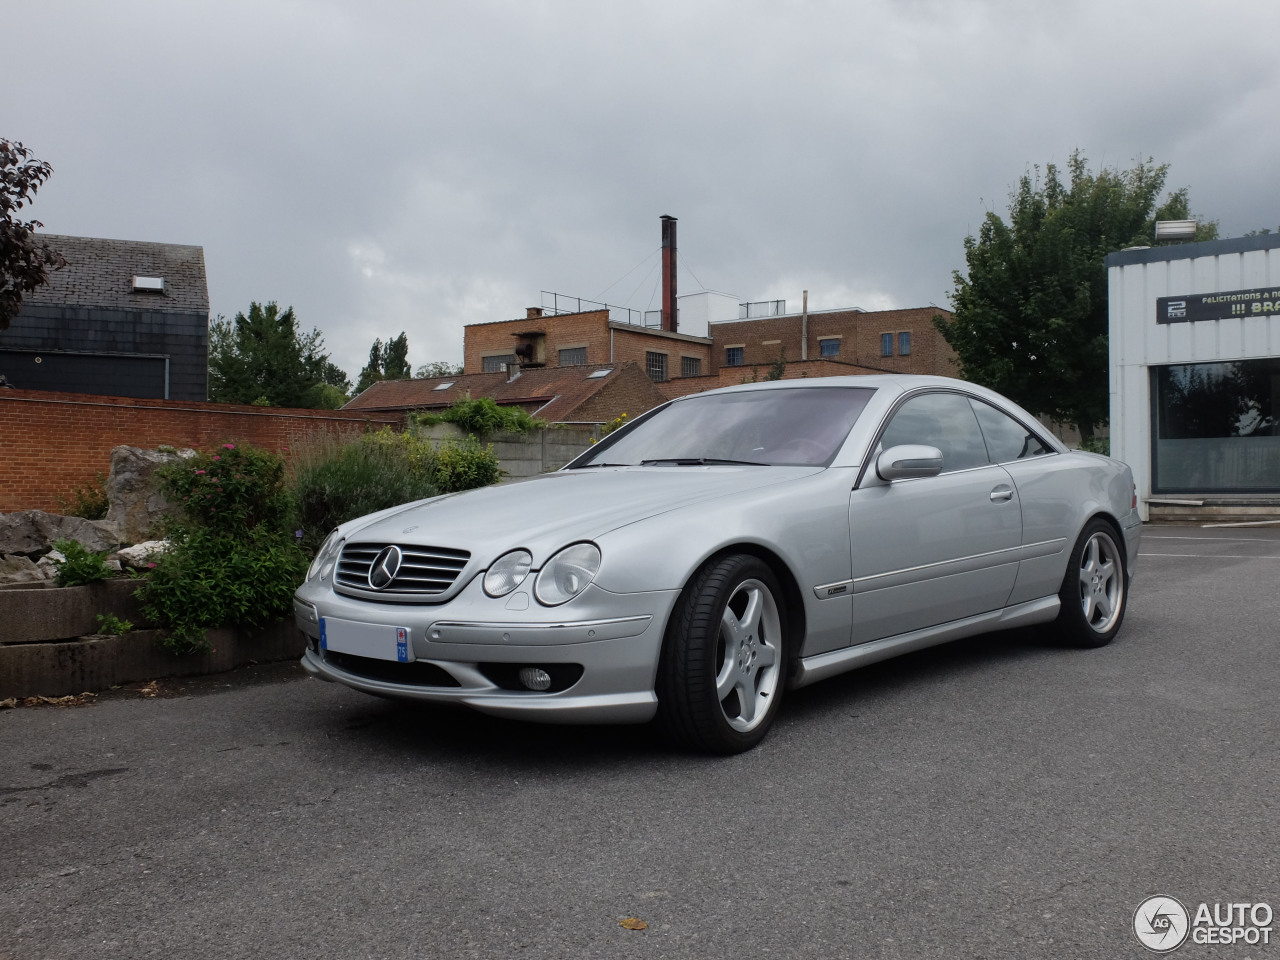 Mercedes benz cl 55 amg f1 limited edition